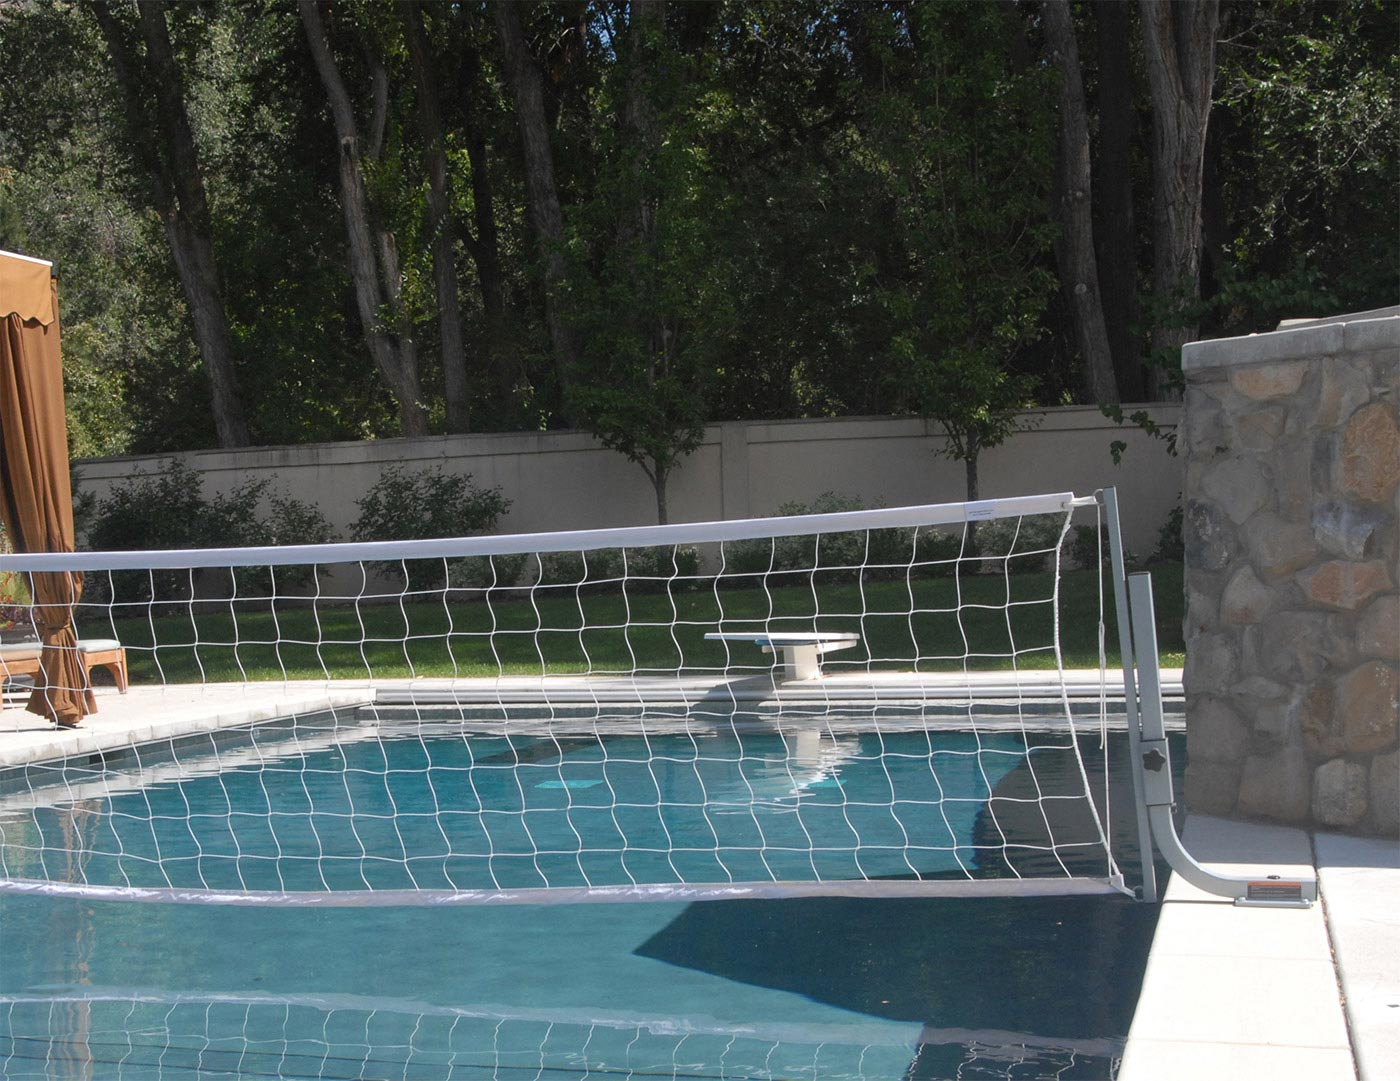 QuikSpike Pool Volleyball With On-Deck Anchor System BOXES A, A, E - SwimShape